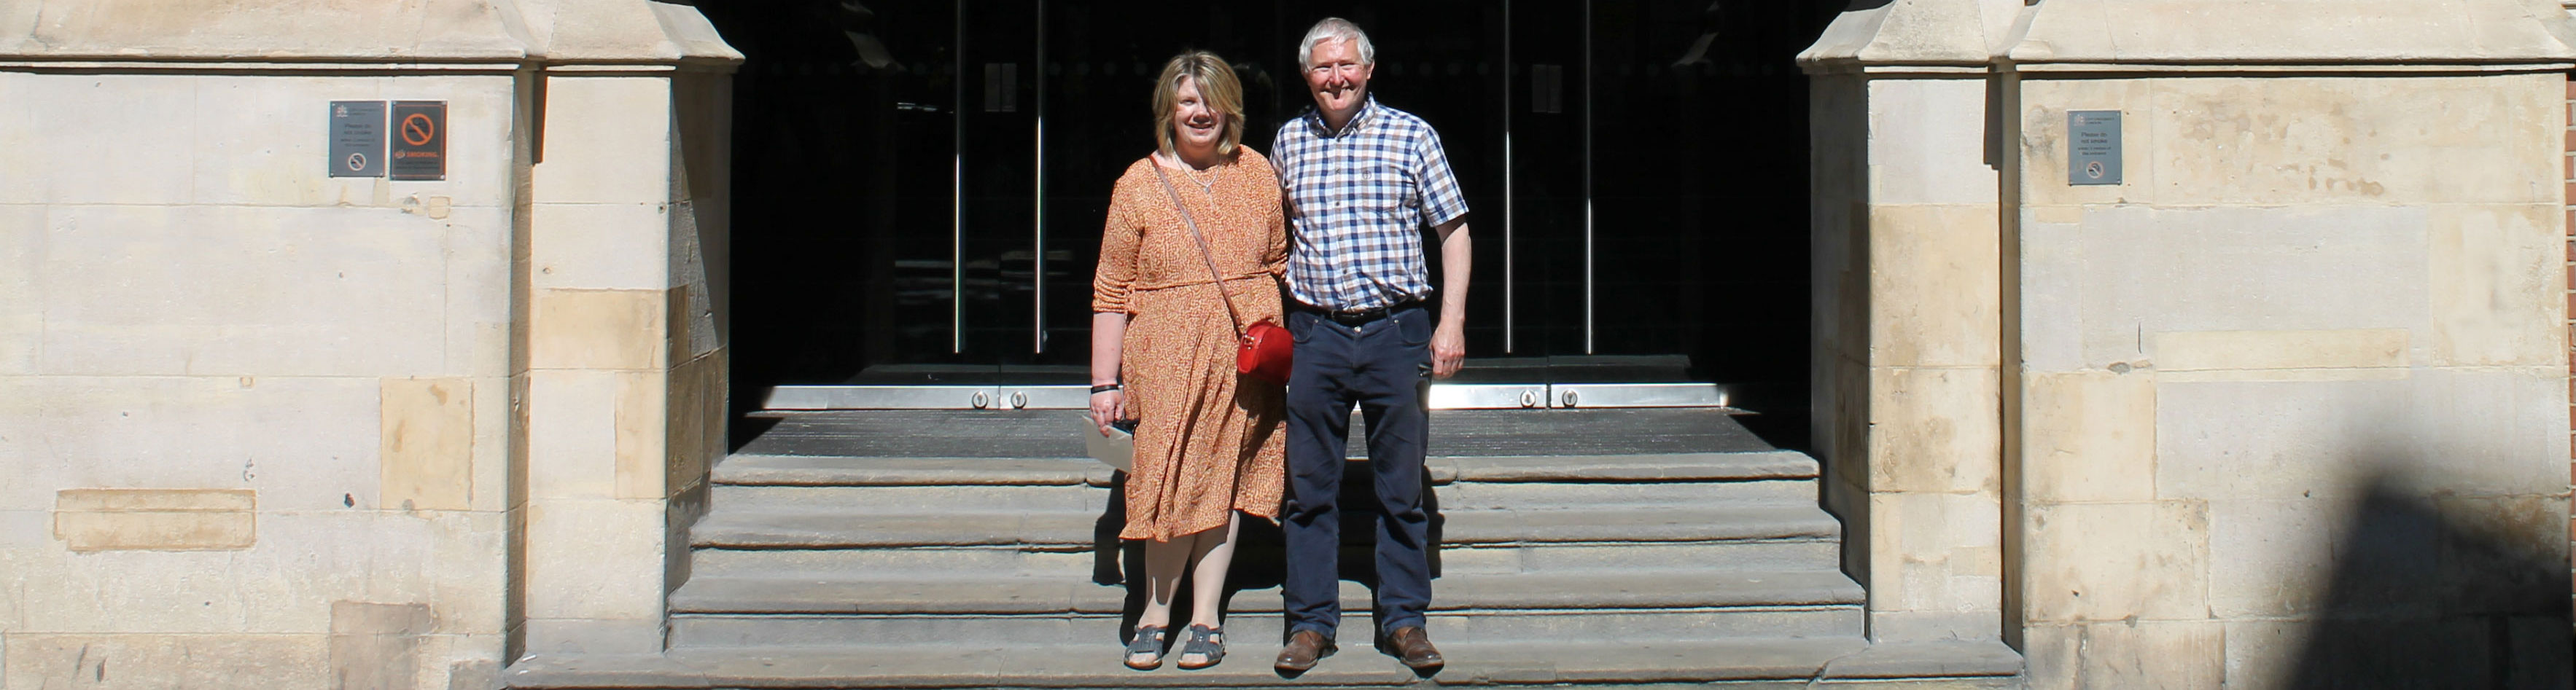 Nigel and Clare, who met at Department of Journalism 35 years ago